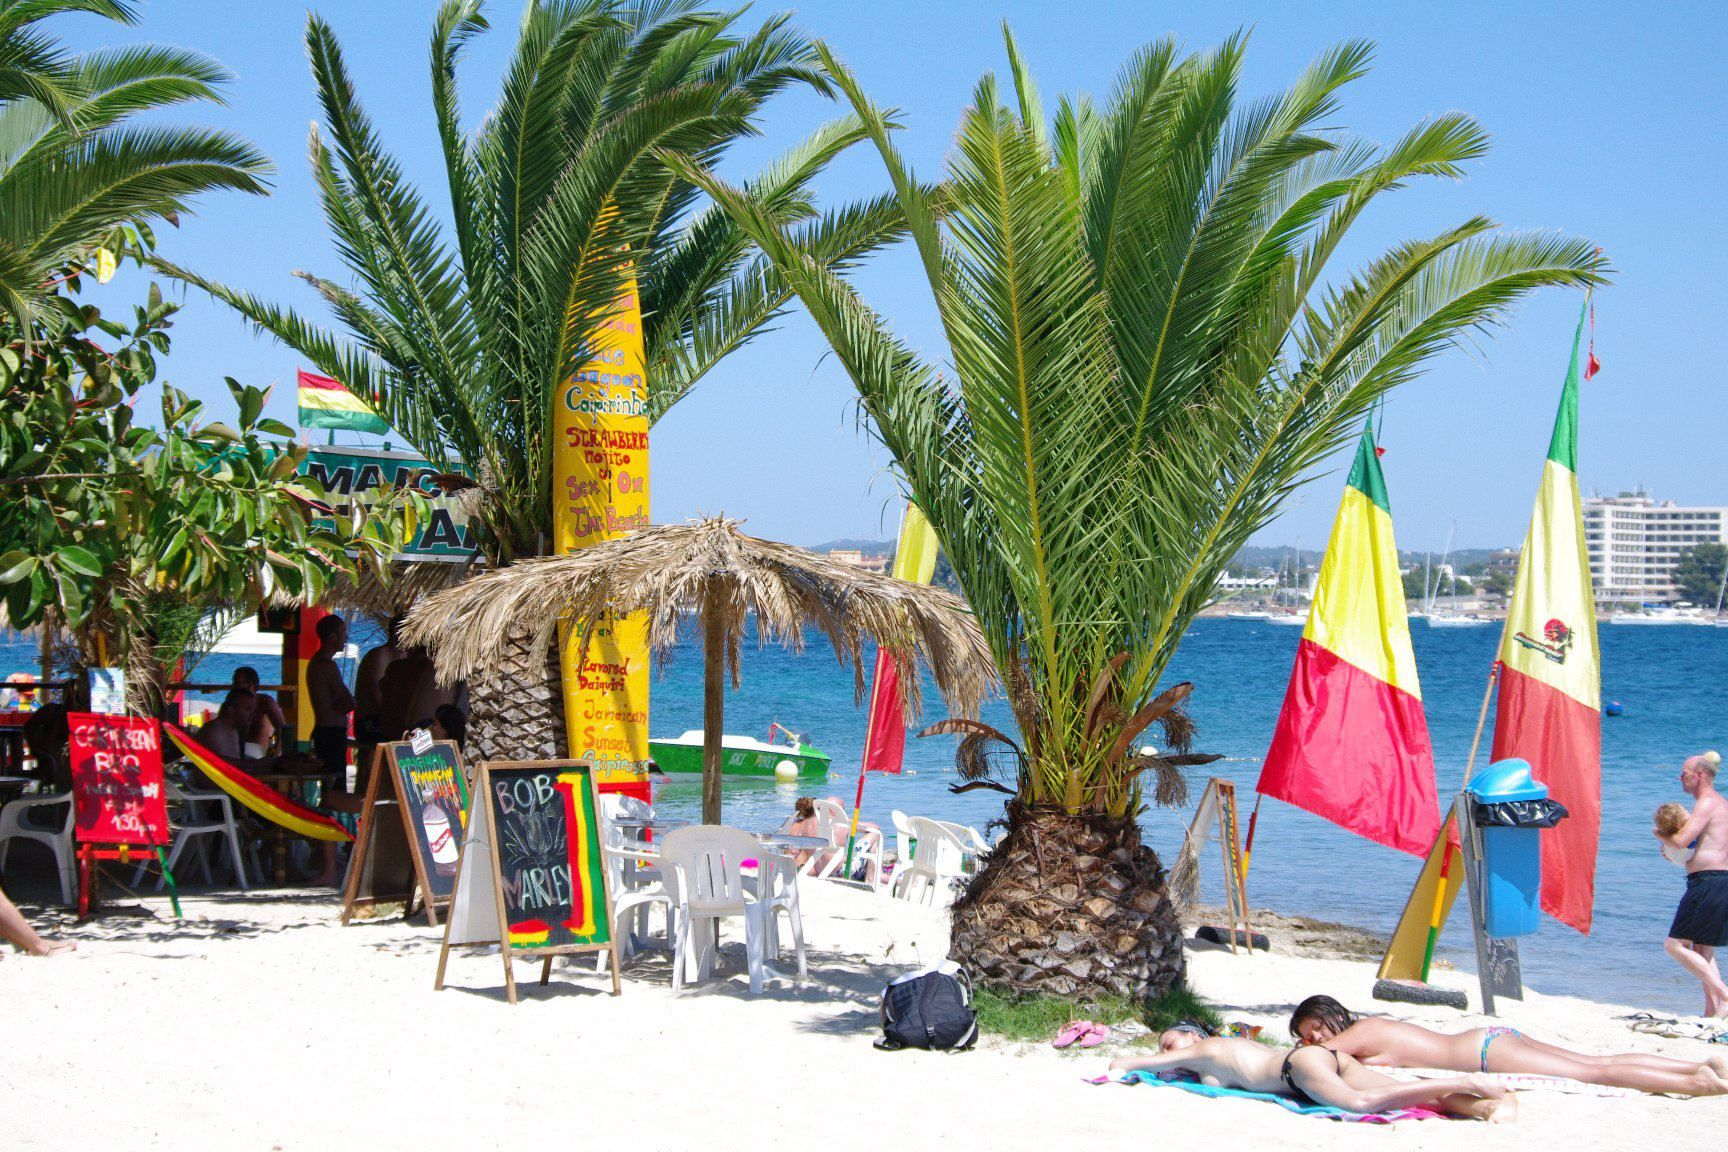 Reggae Beach Bar Jamaica Cayman Islands Jamaica Beaches Best Beaches Of Jamaica Greater Antilles Beaches Greater Antilles Jamaica Beaches Travel